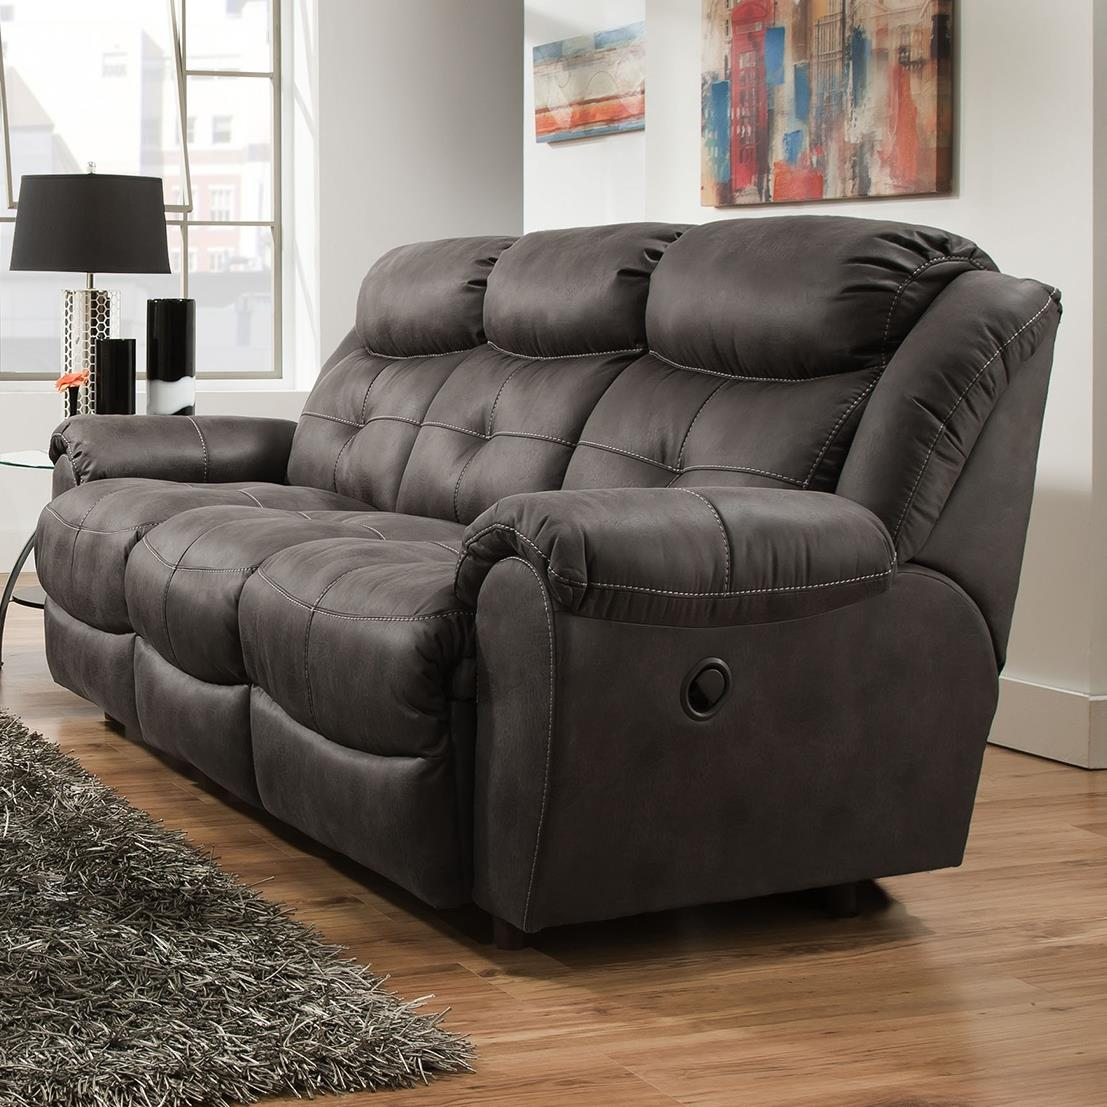 Lisbon Reclining Sofa by Franklin at Catalog Outlet